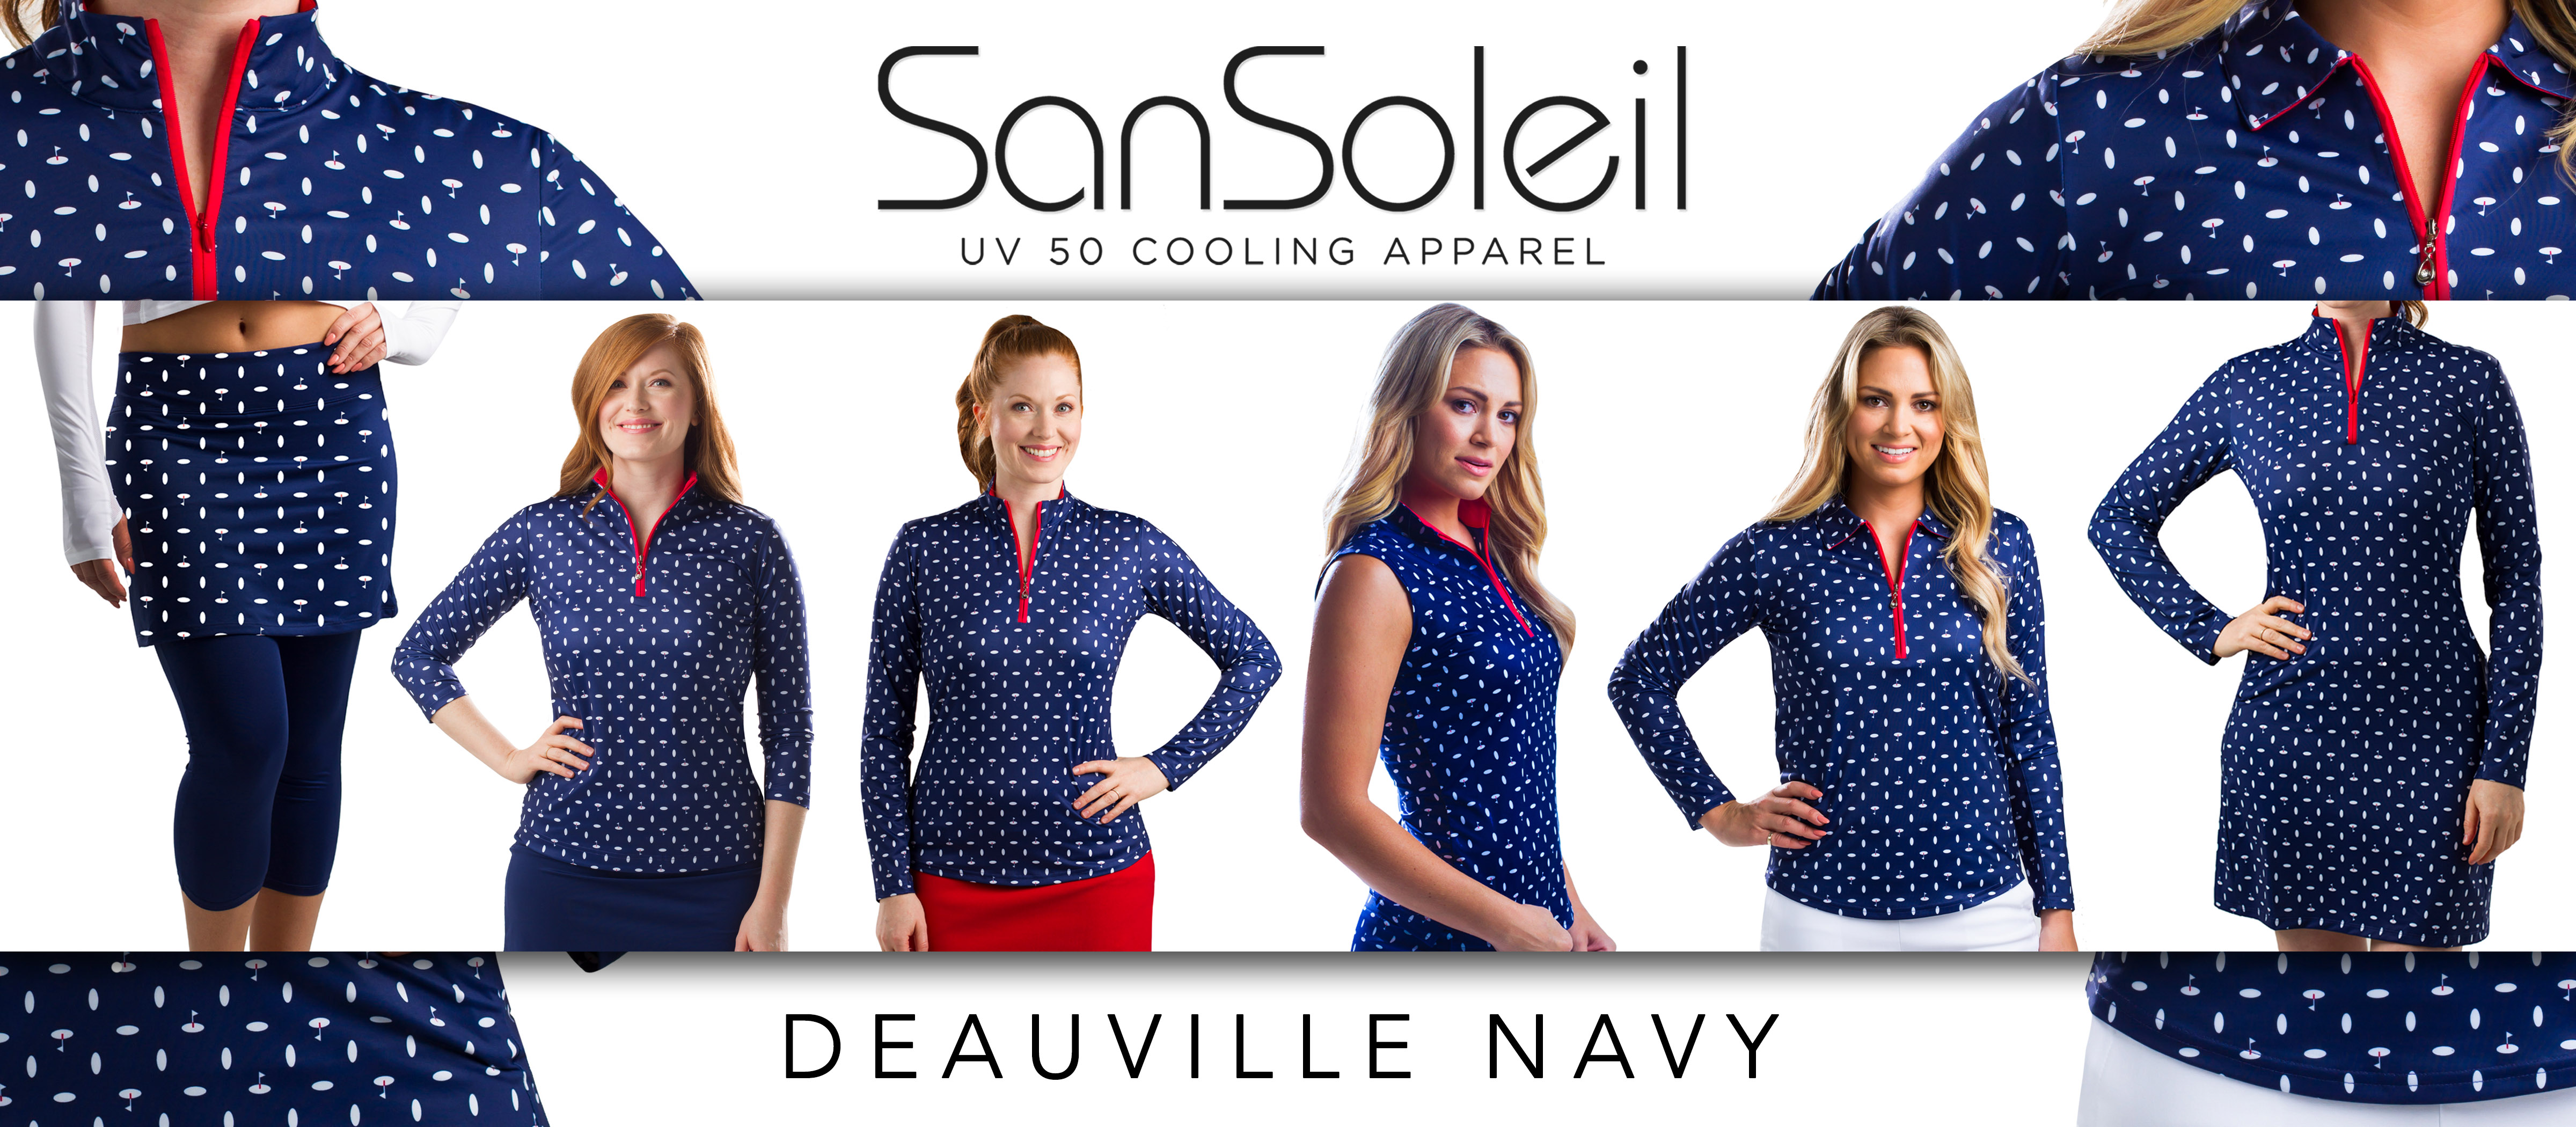 Deauville Navy Team Play